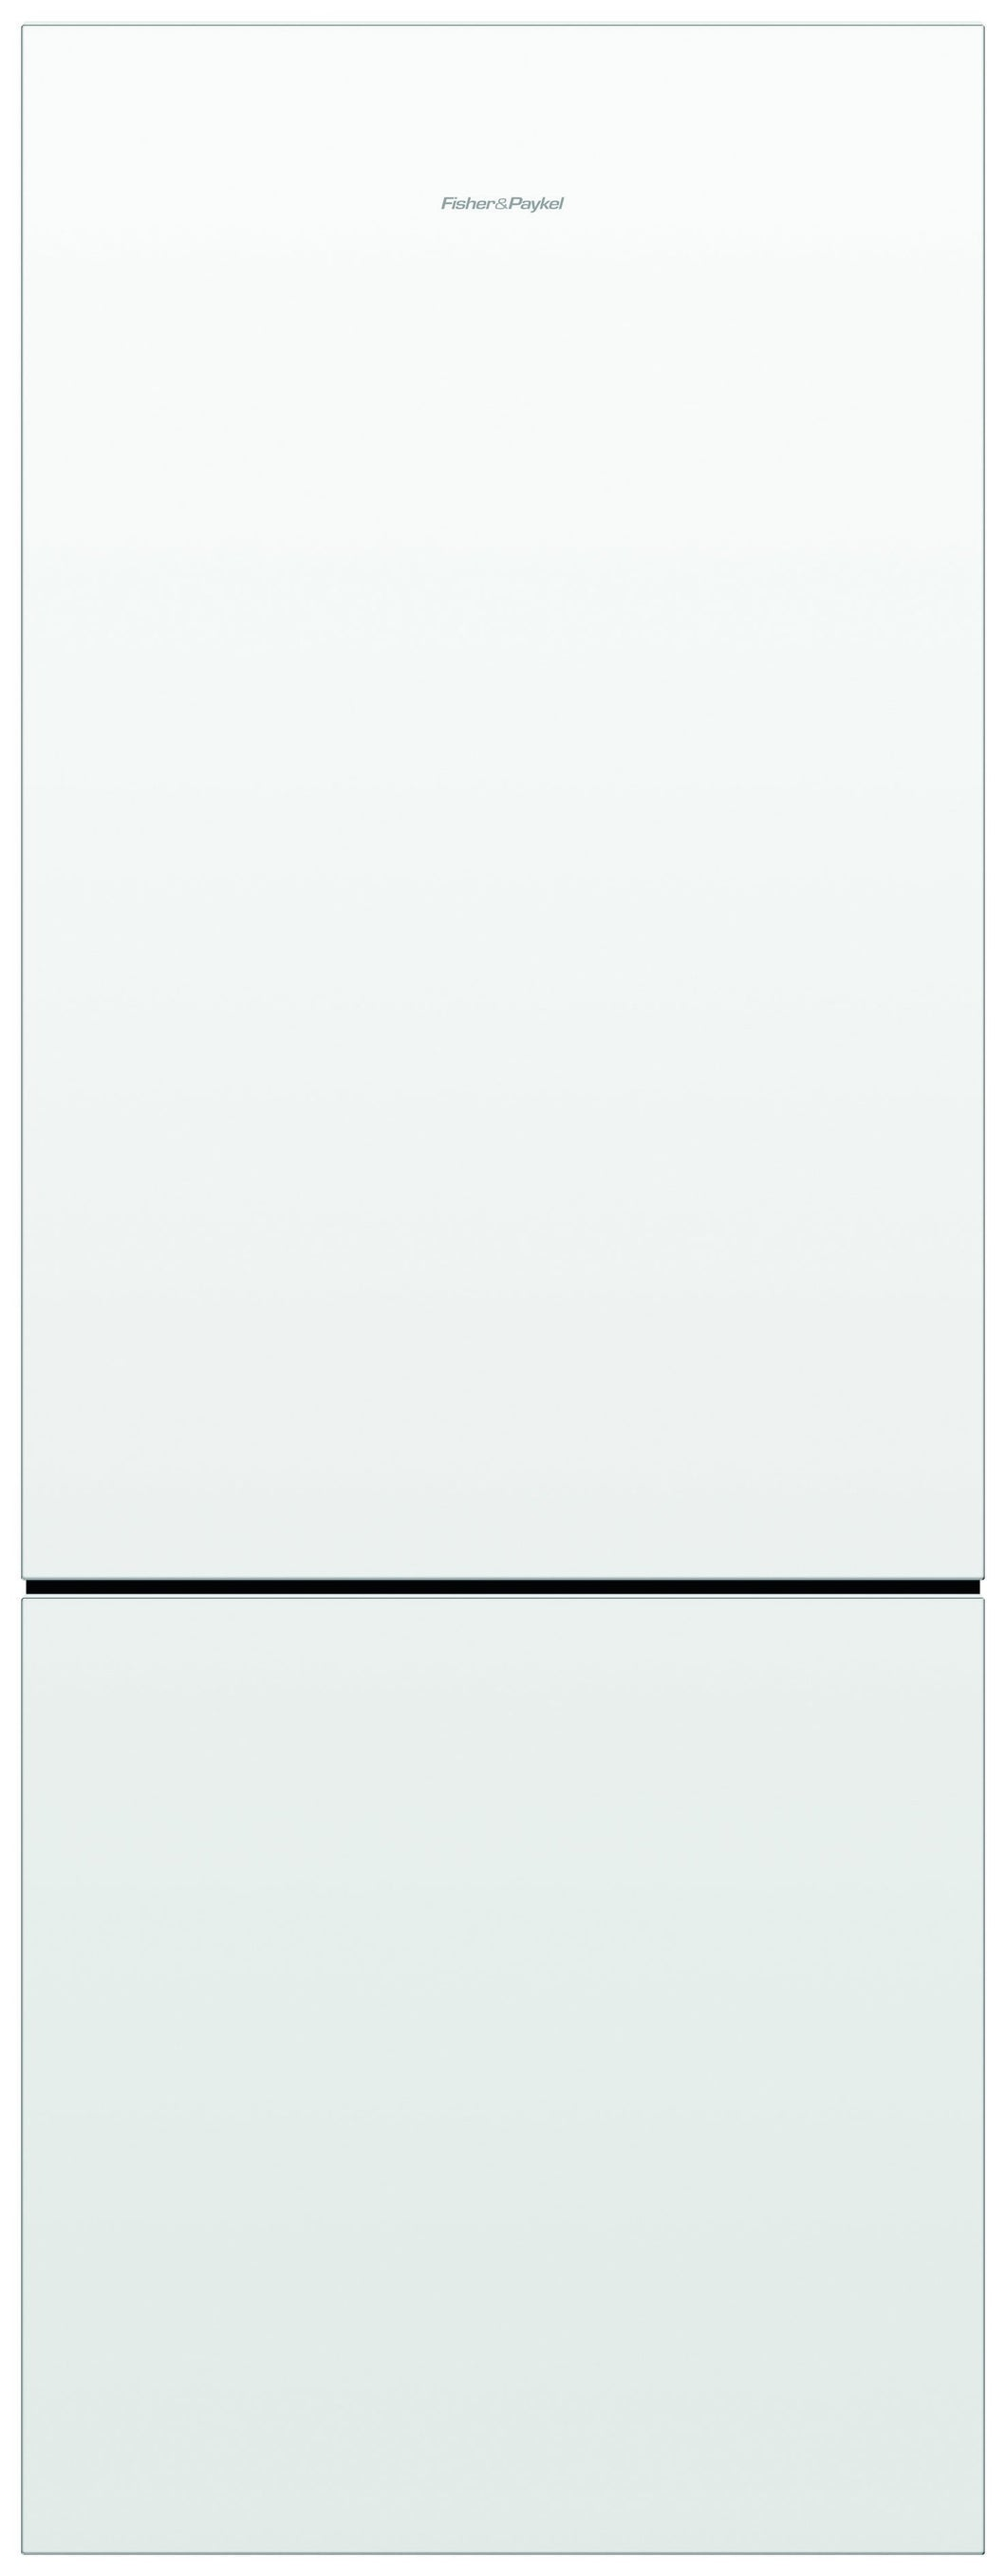 Fisher & Paykel Bottom Mount Fridge 403L - Brisbane Home Appliances